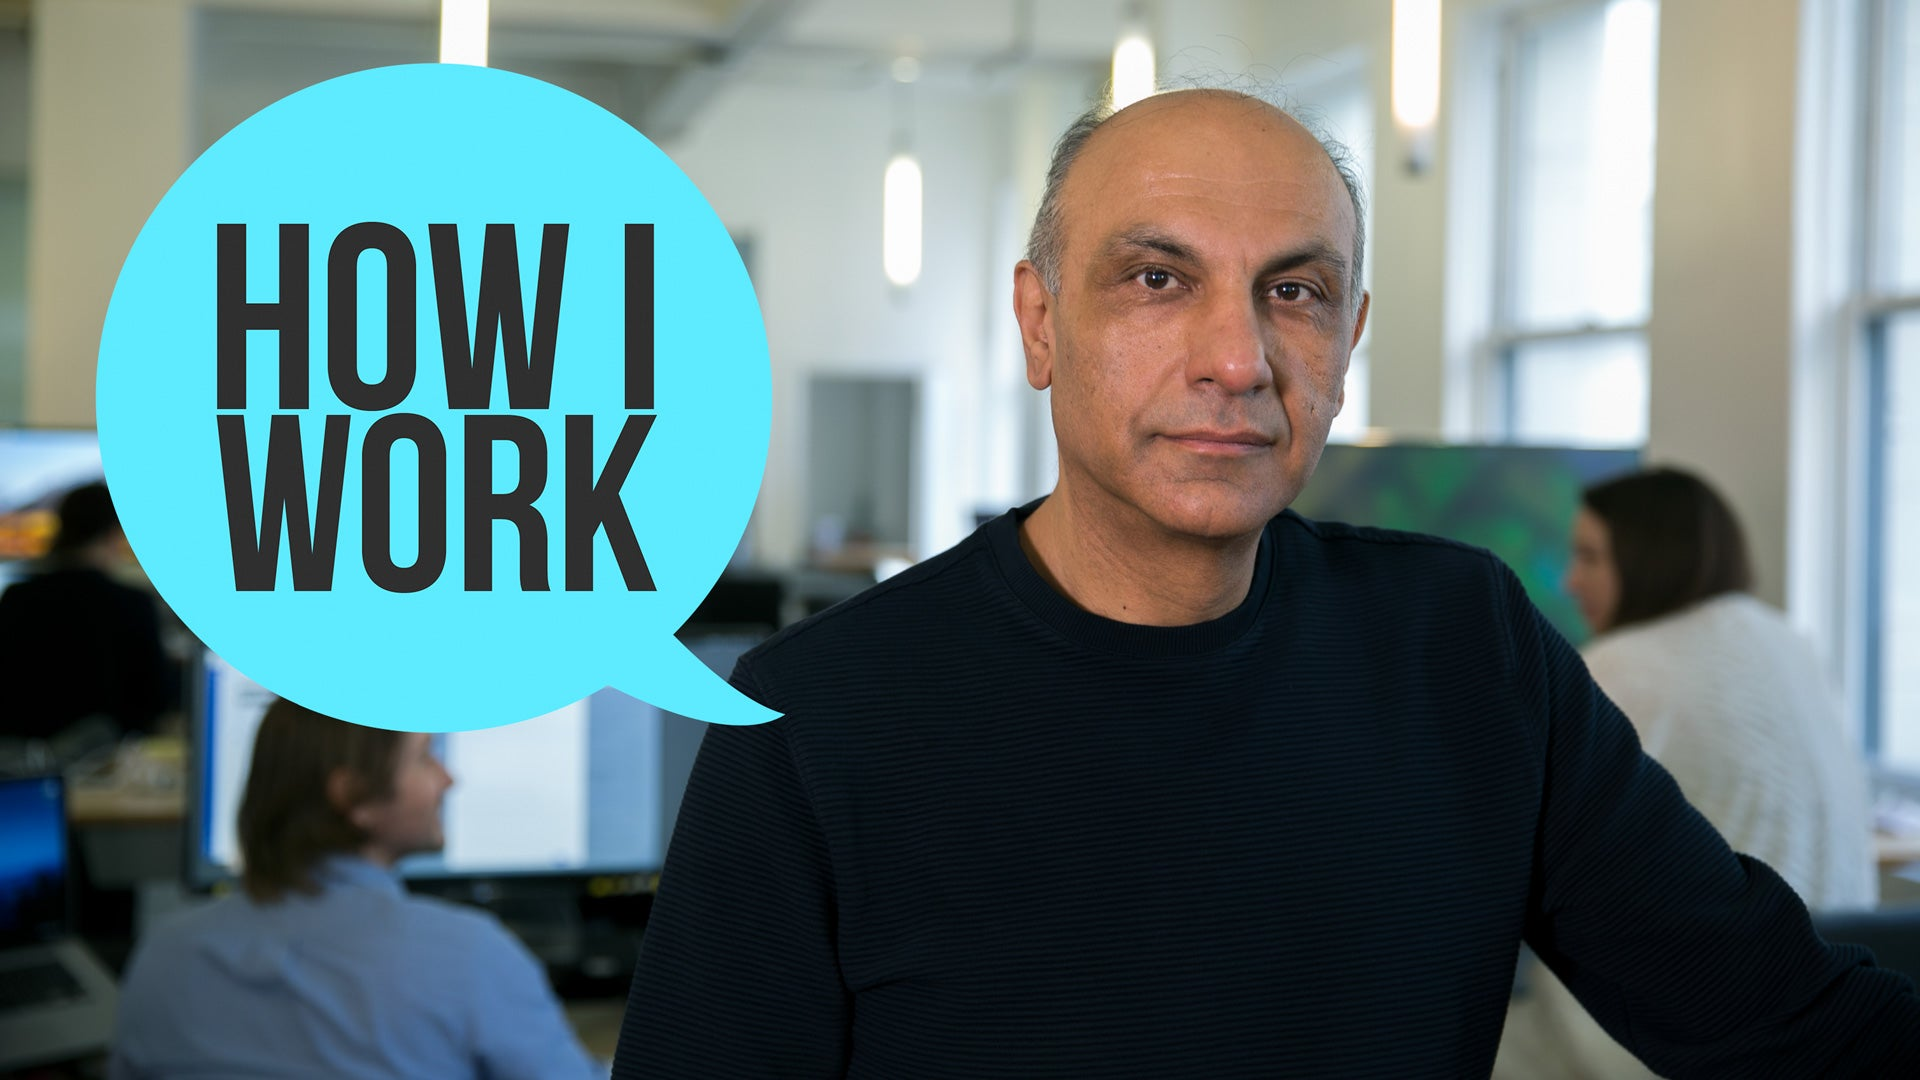 I'm PicsArt Founder Hovhannes Avoyan, And This Is How I Work